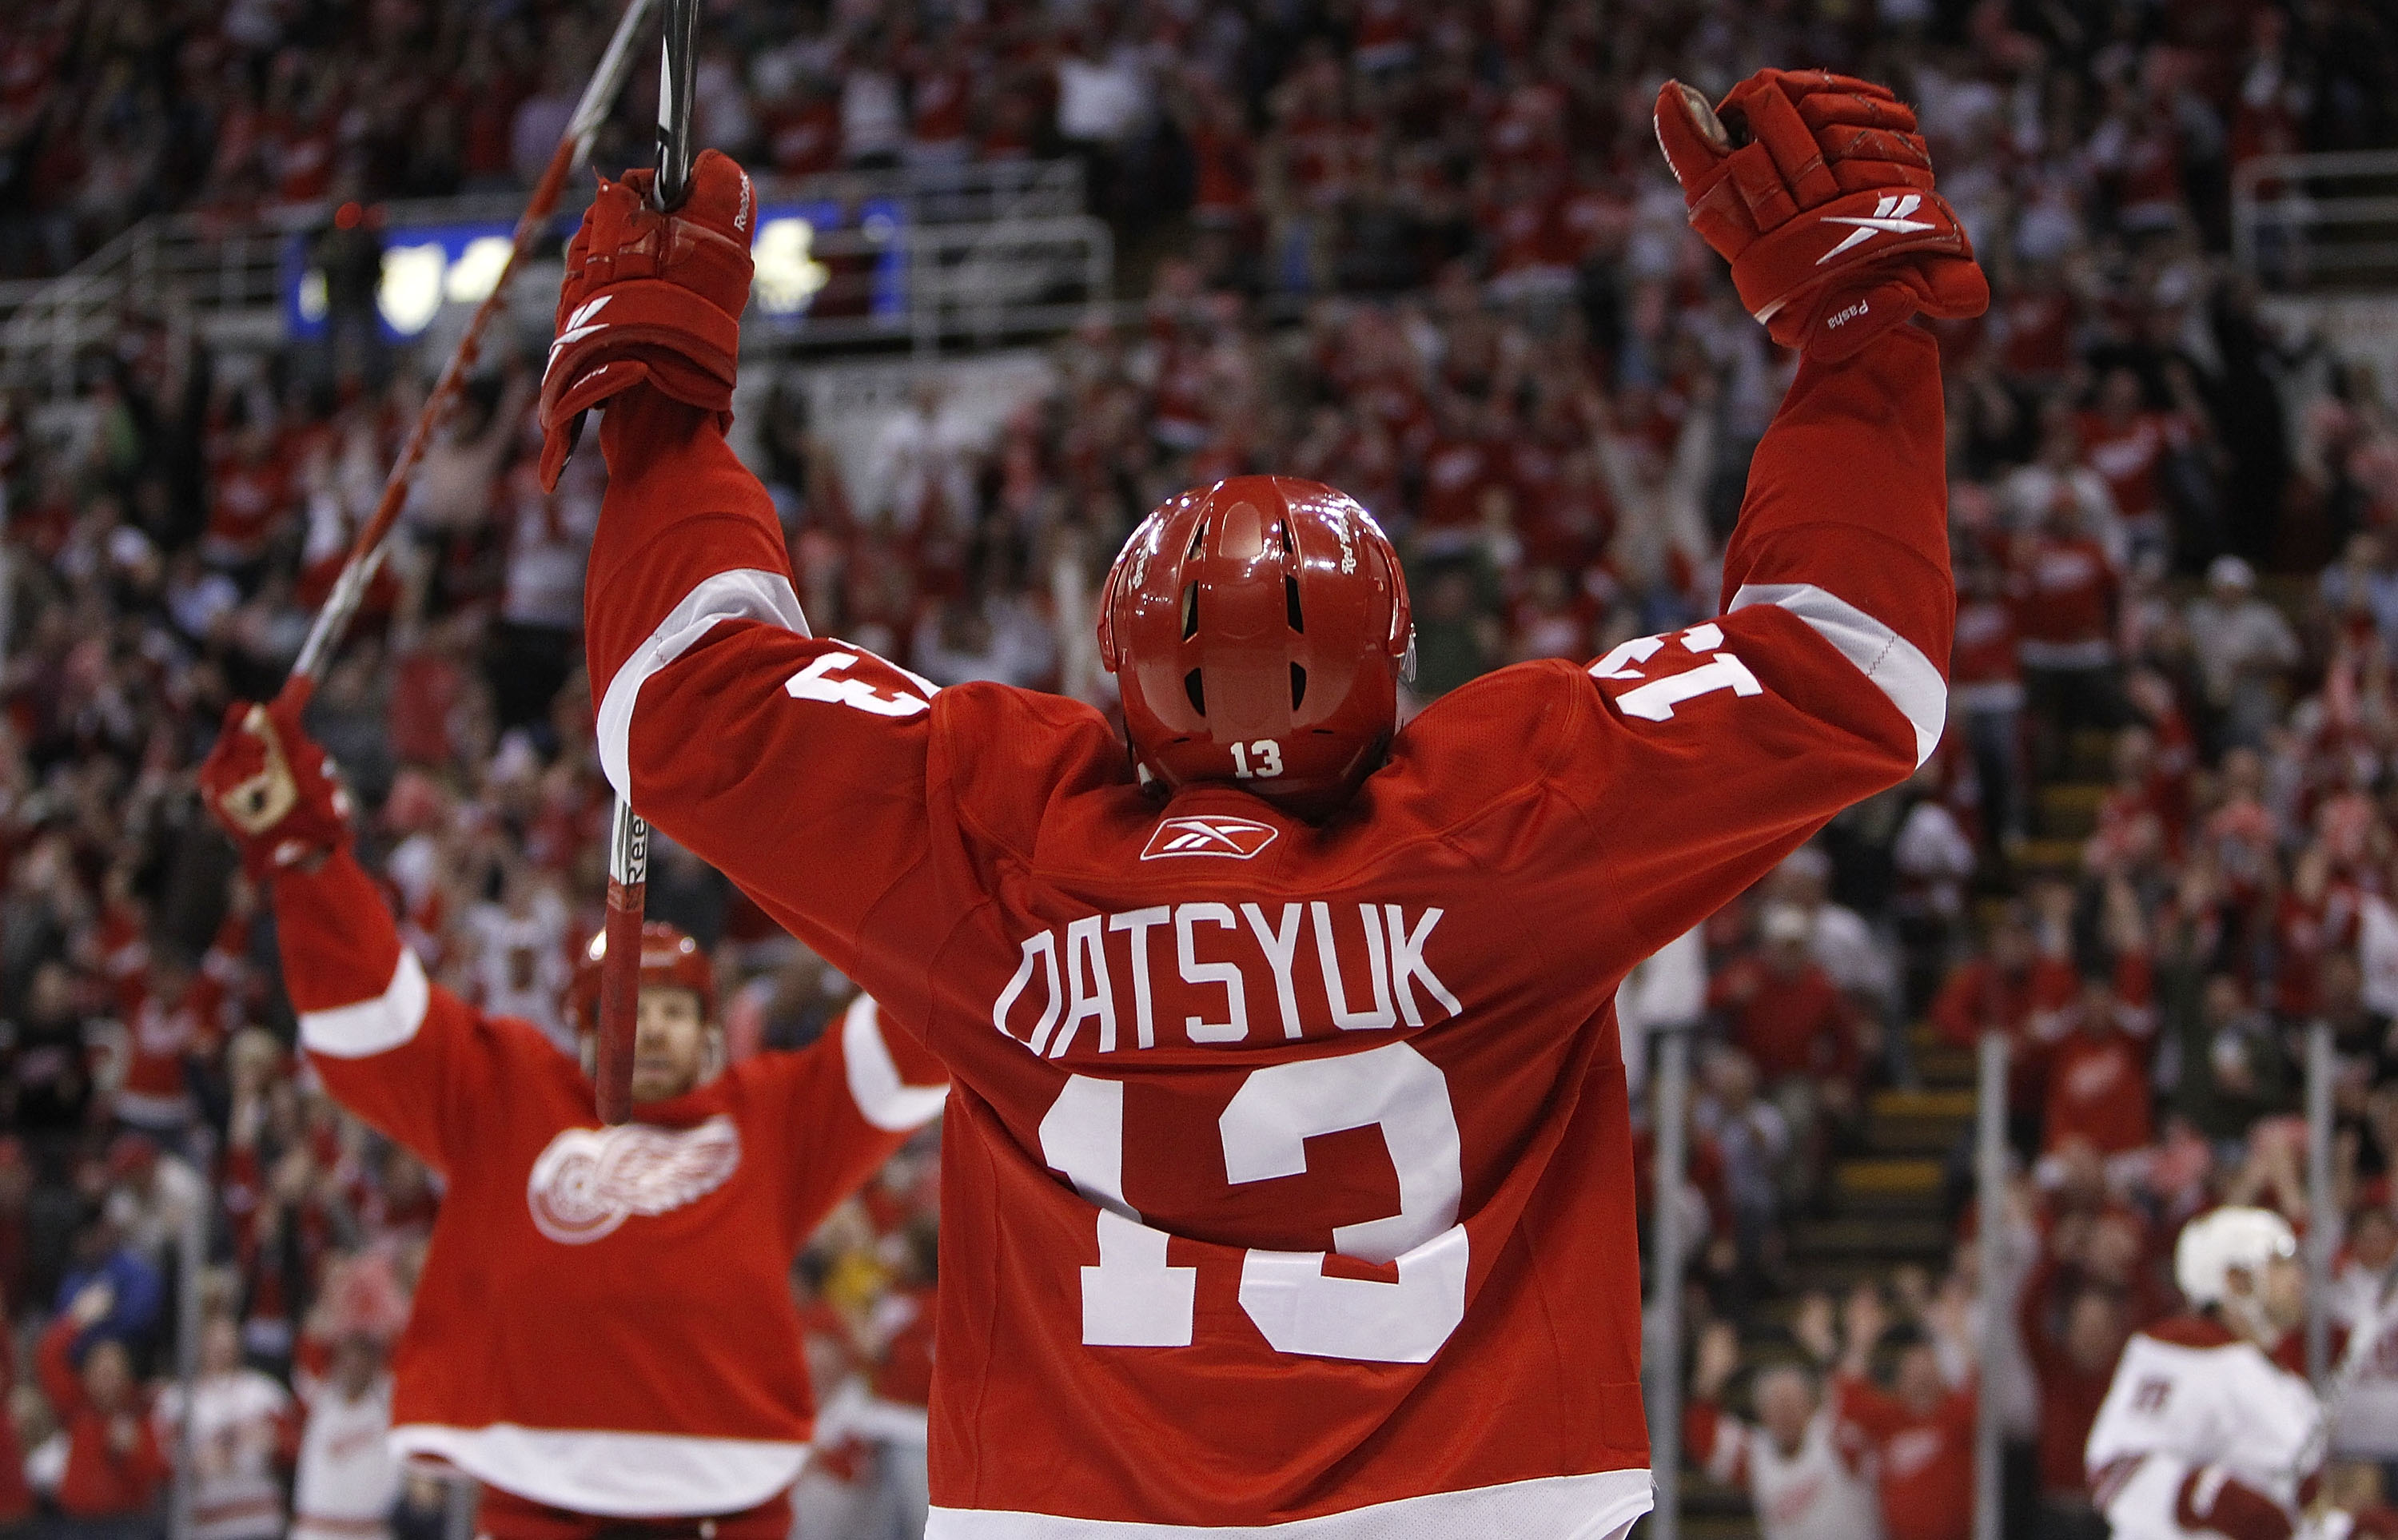 DETROIT - APRIL 20:  Pavel Datsyuk #13 of the Detroit Red Wings celebrates his third-period goal with Johan Franzen #93 while playing the Phoenix Coyotes in Game Four of the Western Conference Quarterfinals of the 2010 NHL Stanley Cup Playoffs on April 20